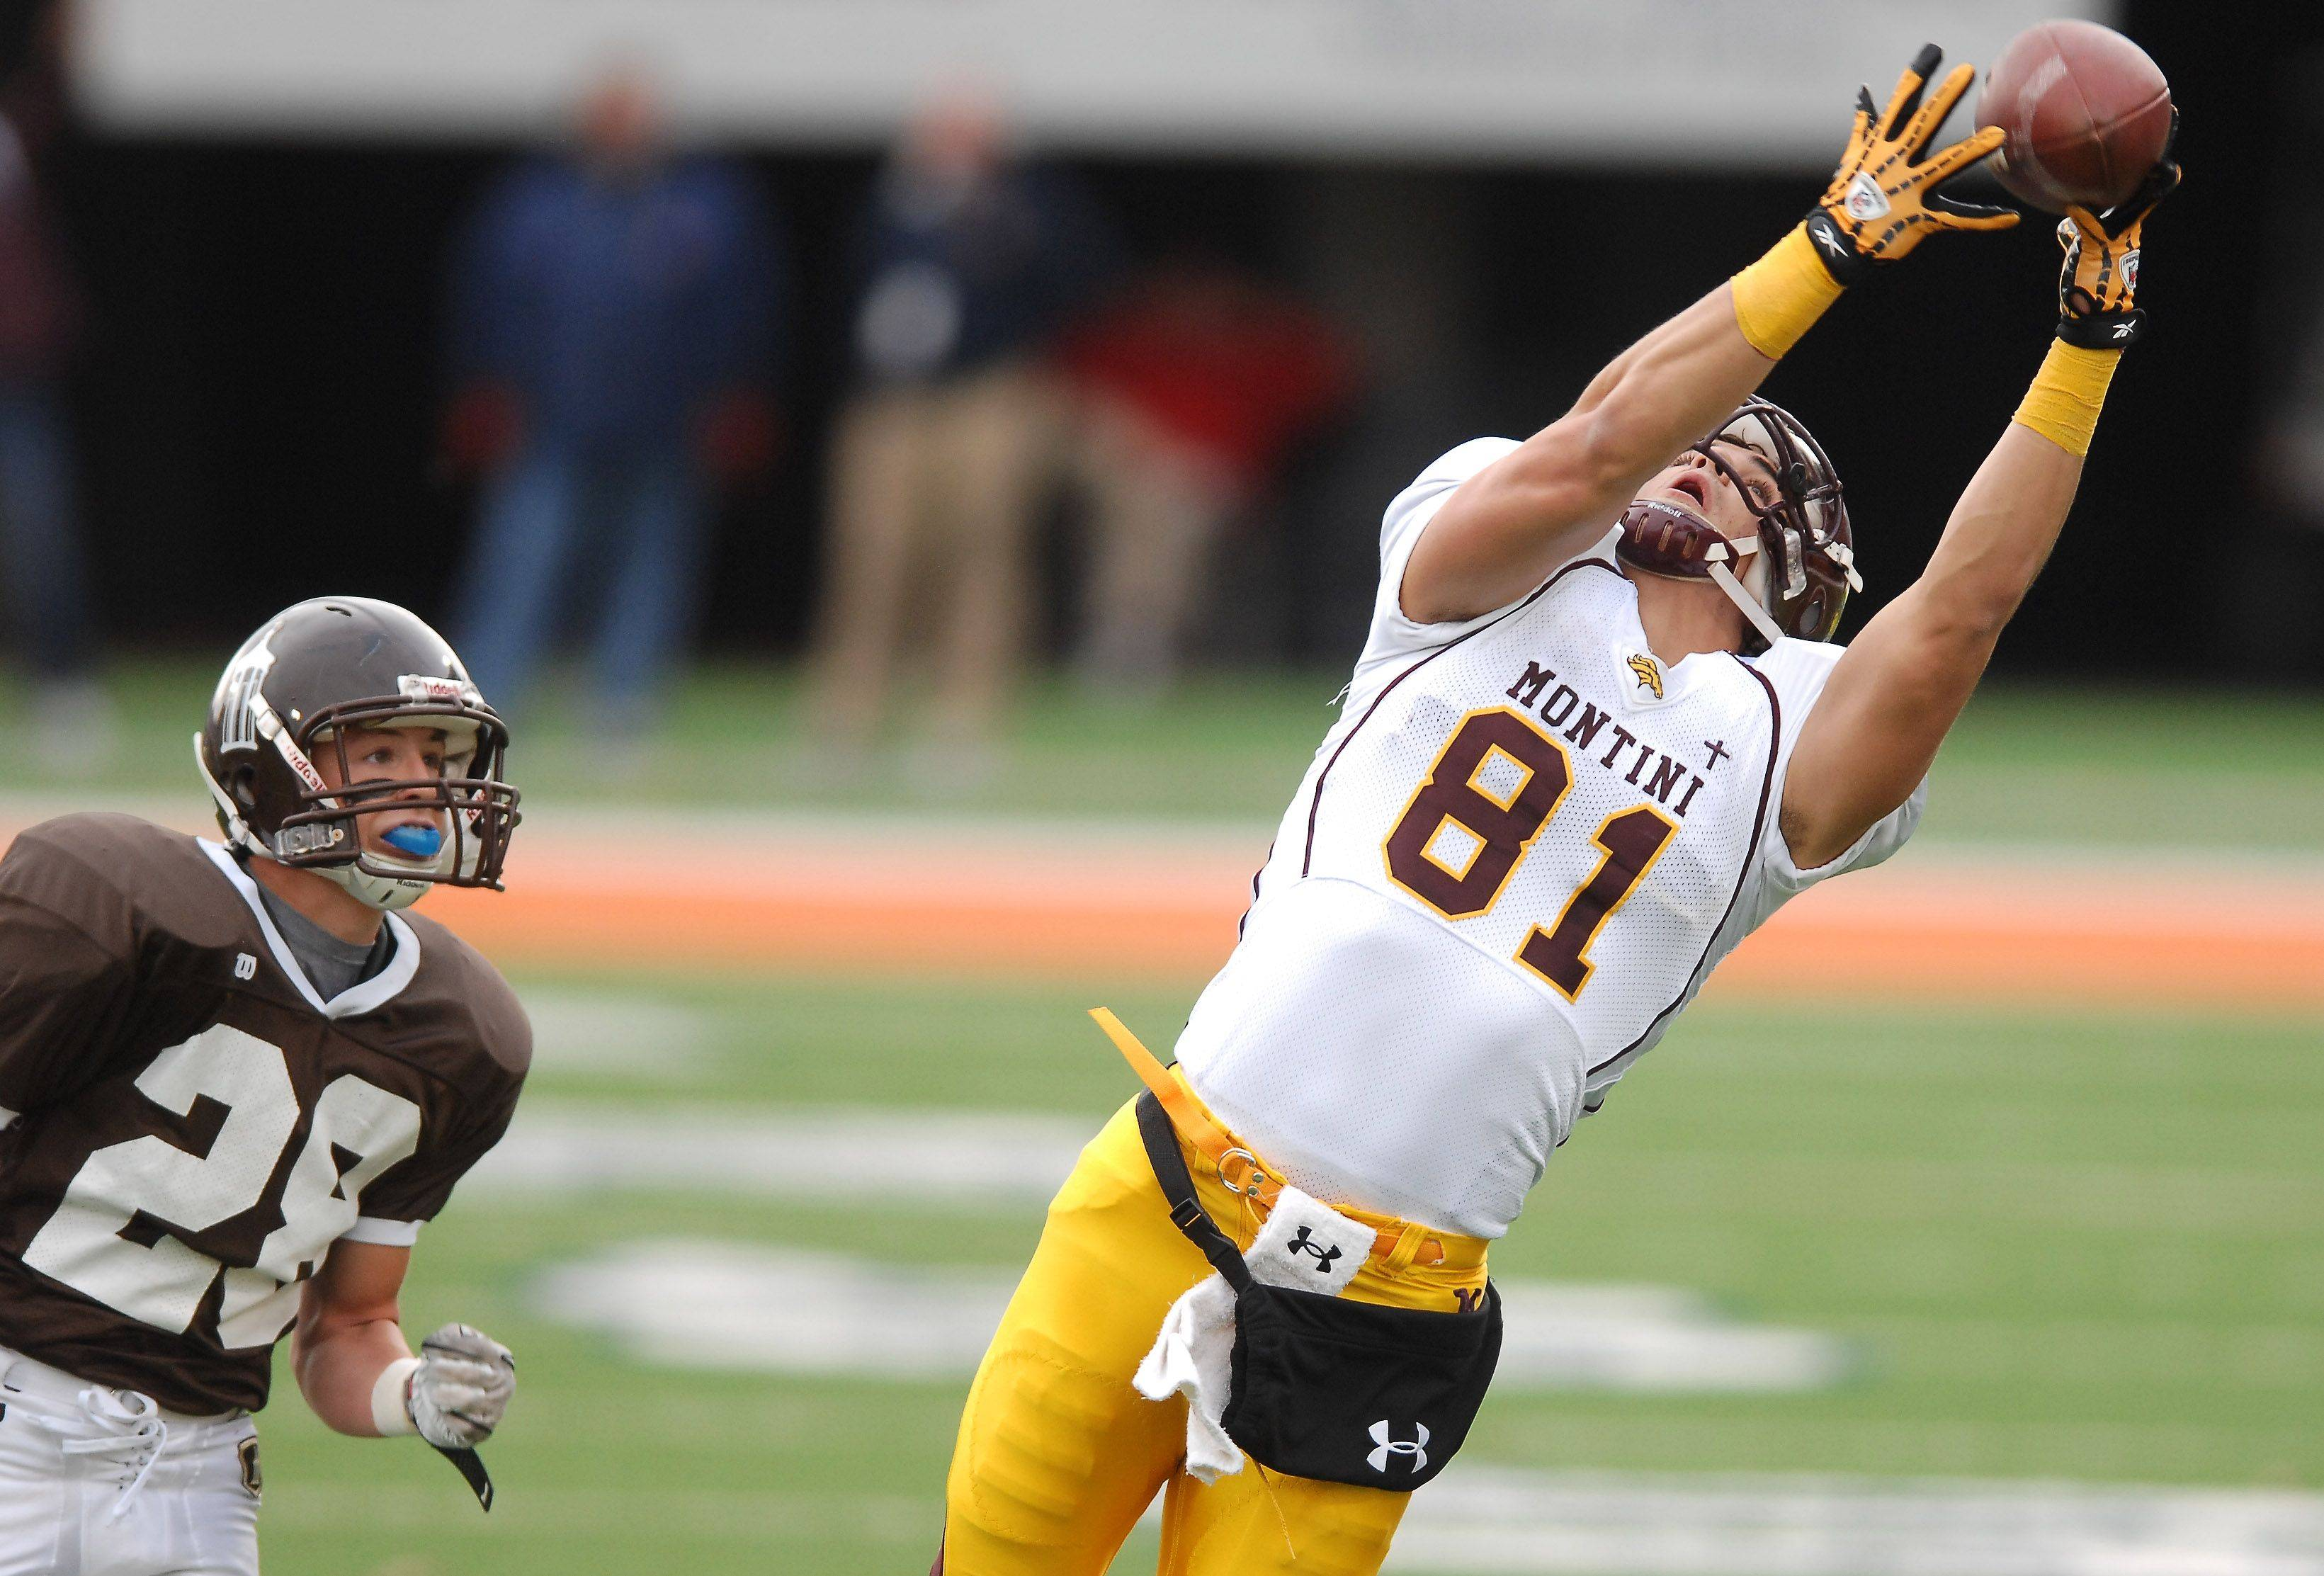 Montini's Jordan Westerkamp hauls in a long pass in front of Joliet Catholic Academy's Grant Harrison during the Class 5A state championship game in Champaign on Saturday.